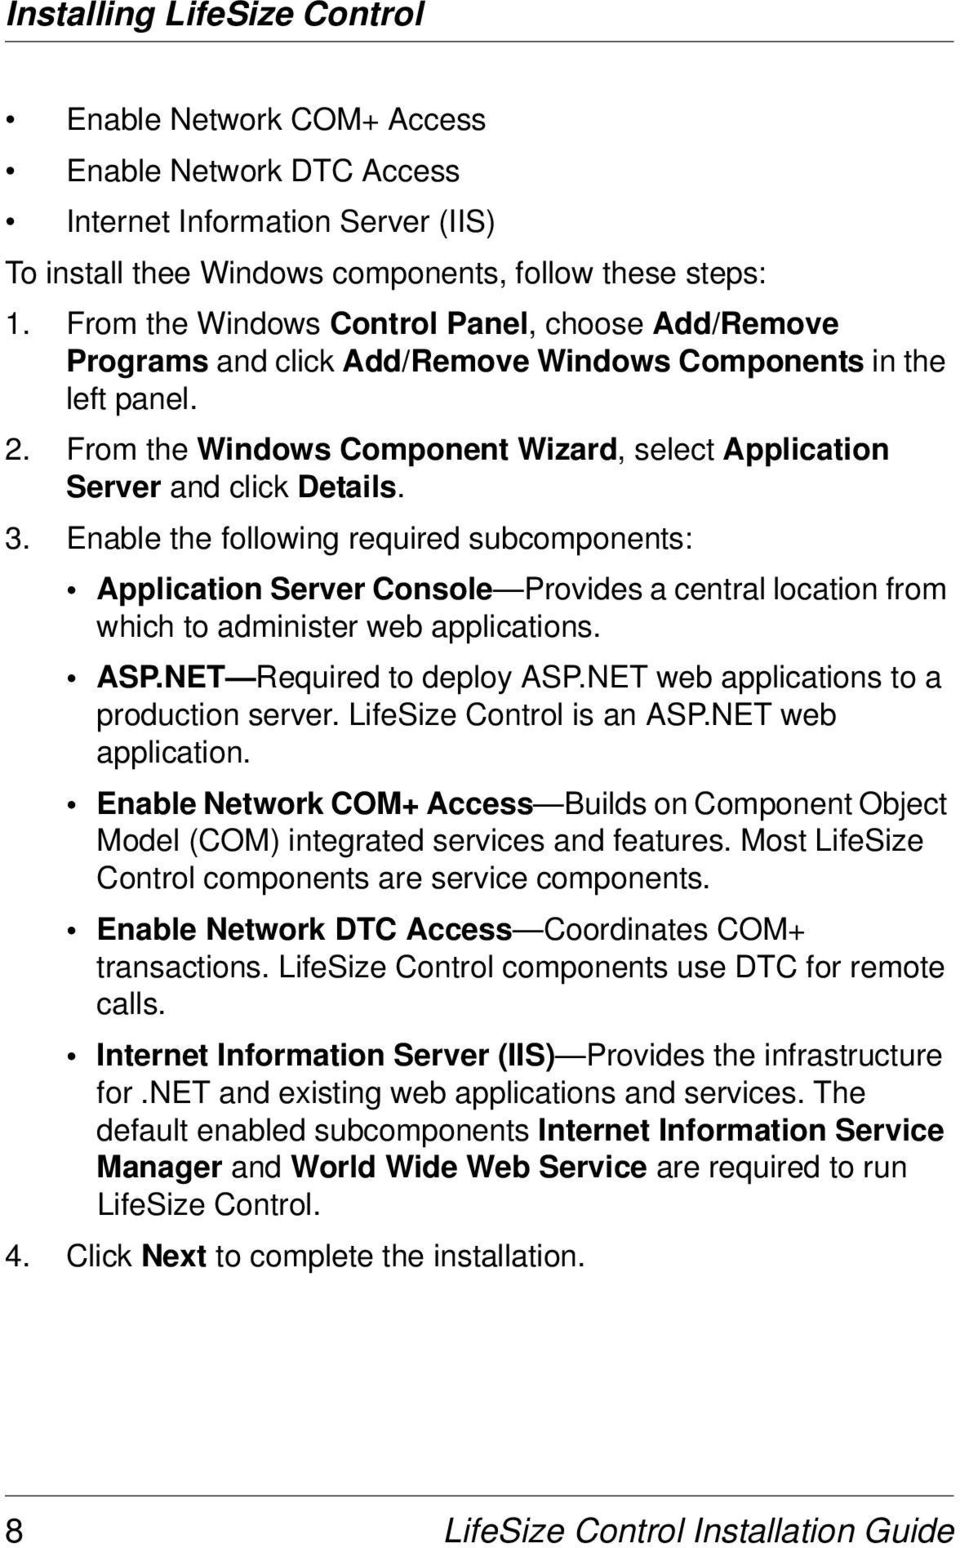 3. Enable the following required subcomponents: Application Server Console Provides a central location from which to administer web applications. ASP.NET Required to deploy ASP.